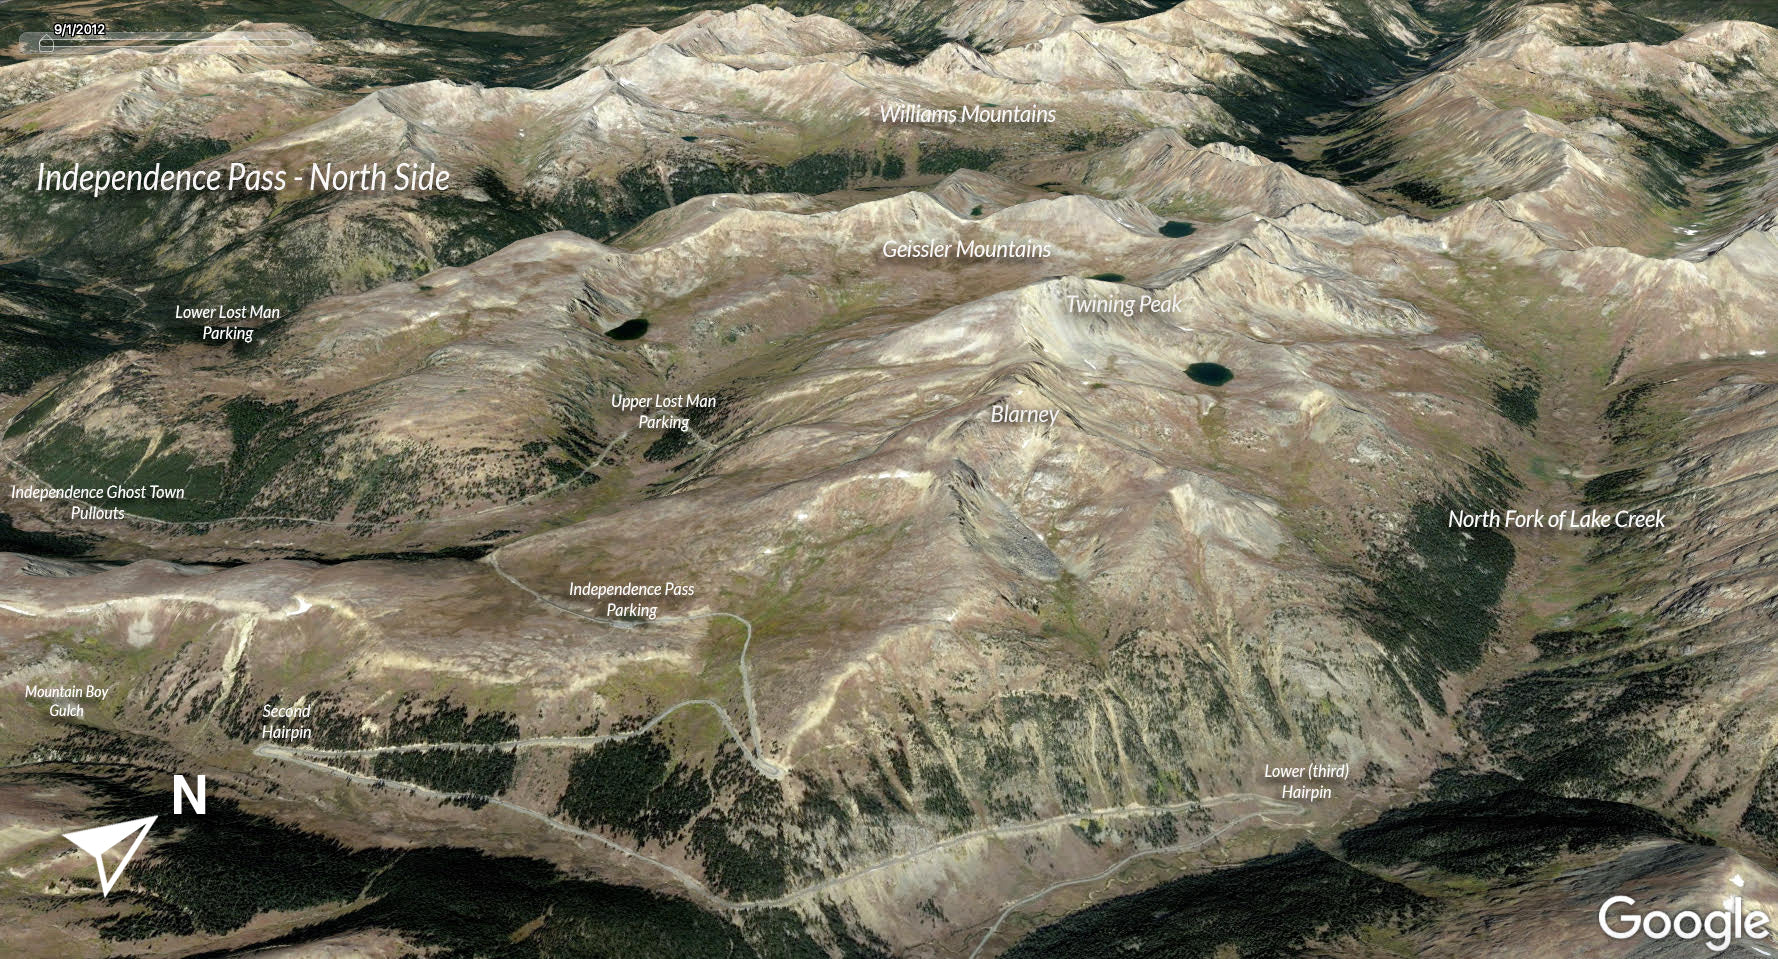 Google Earth view of Independence Pass North